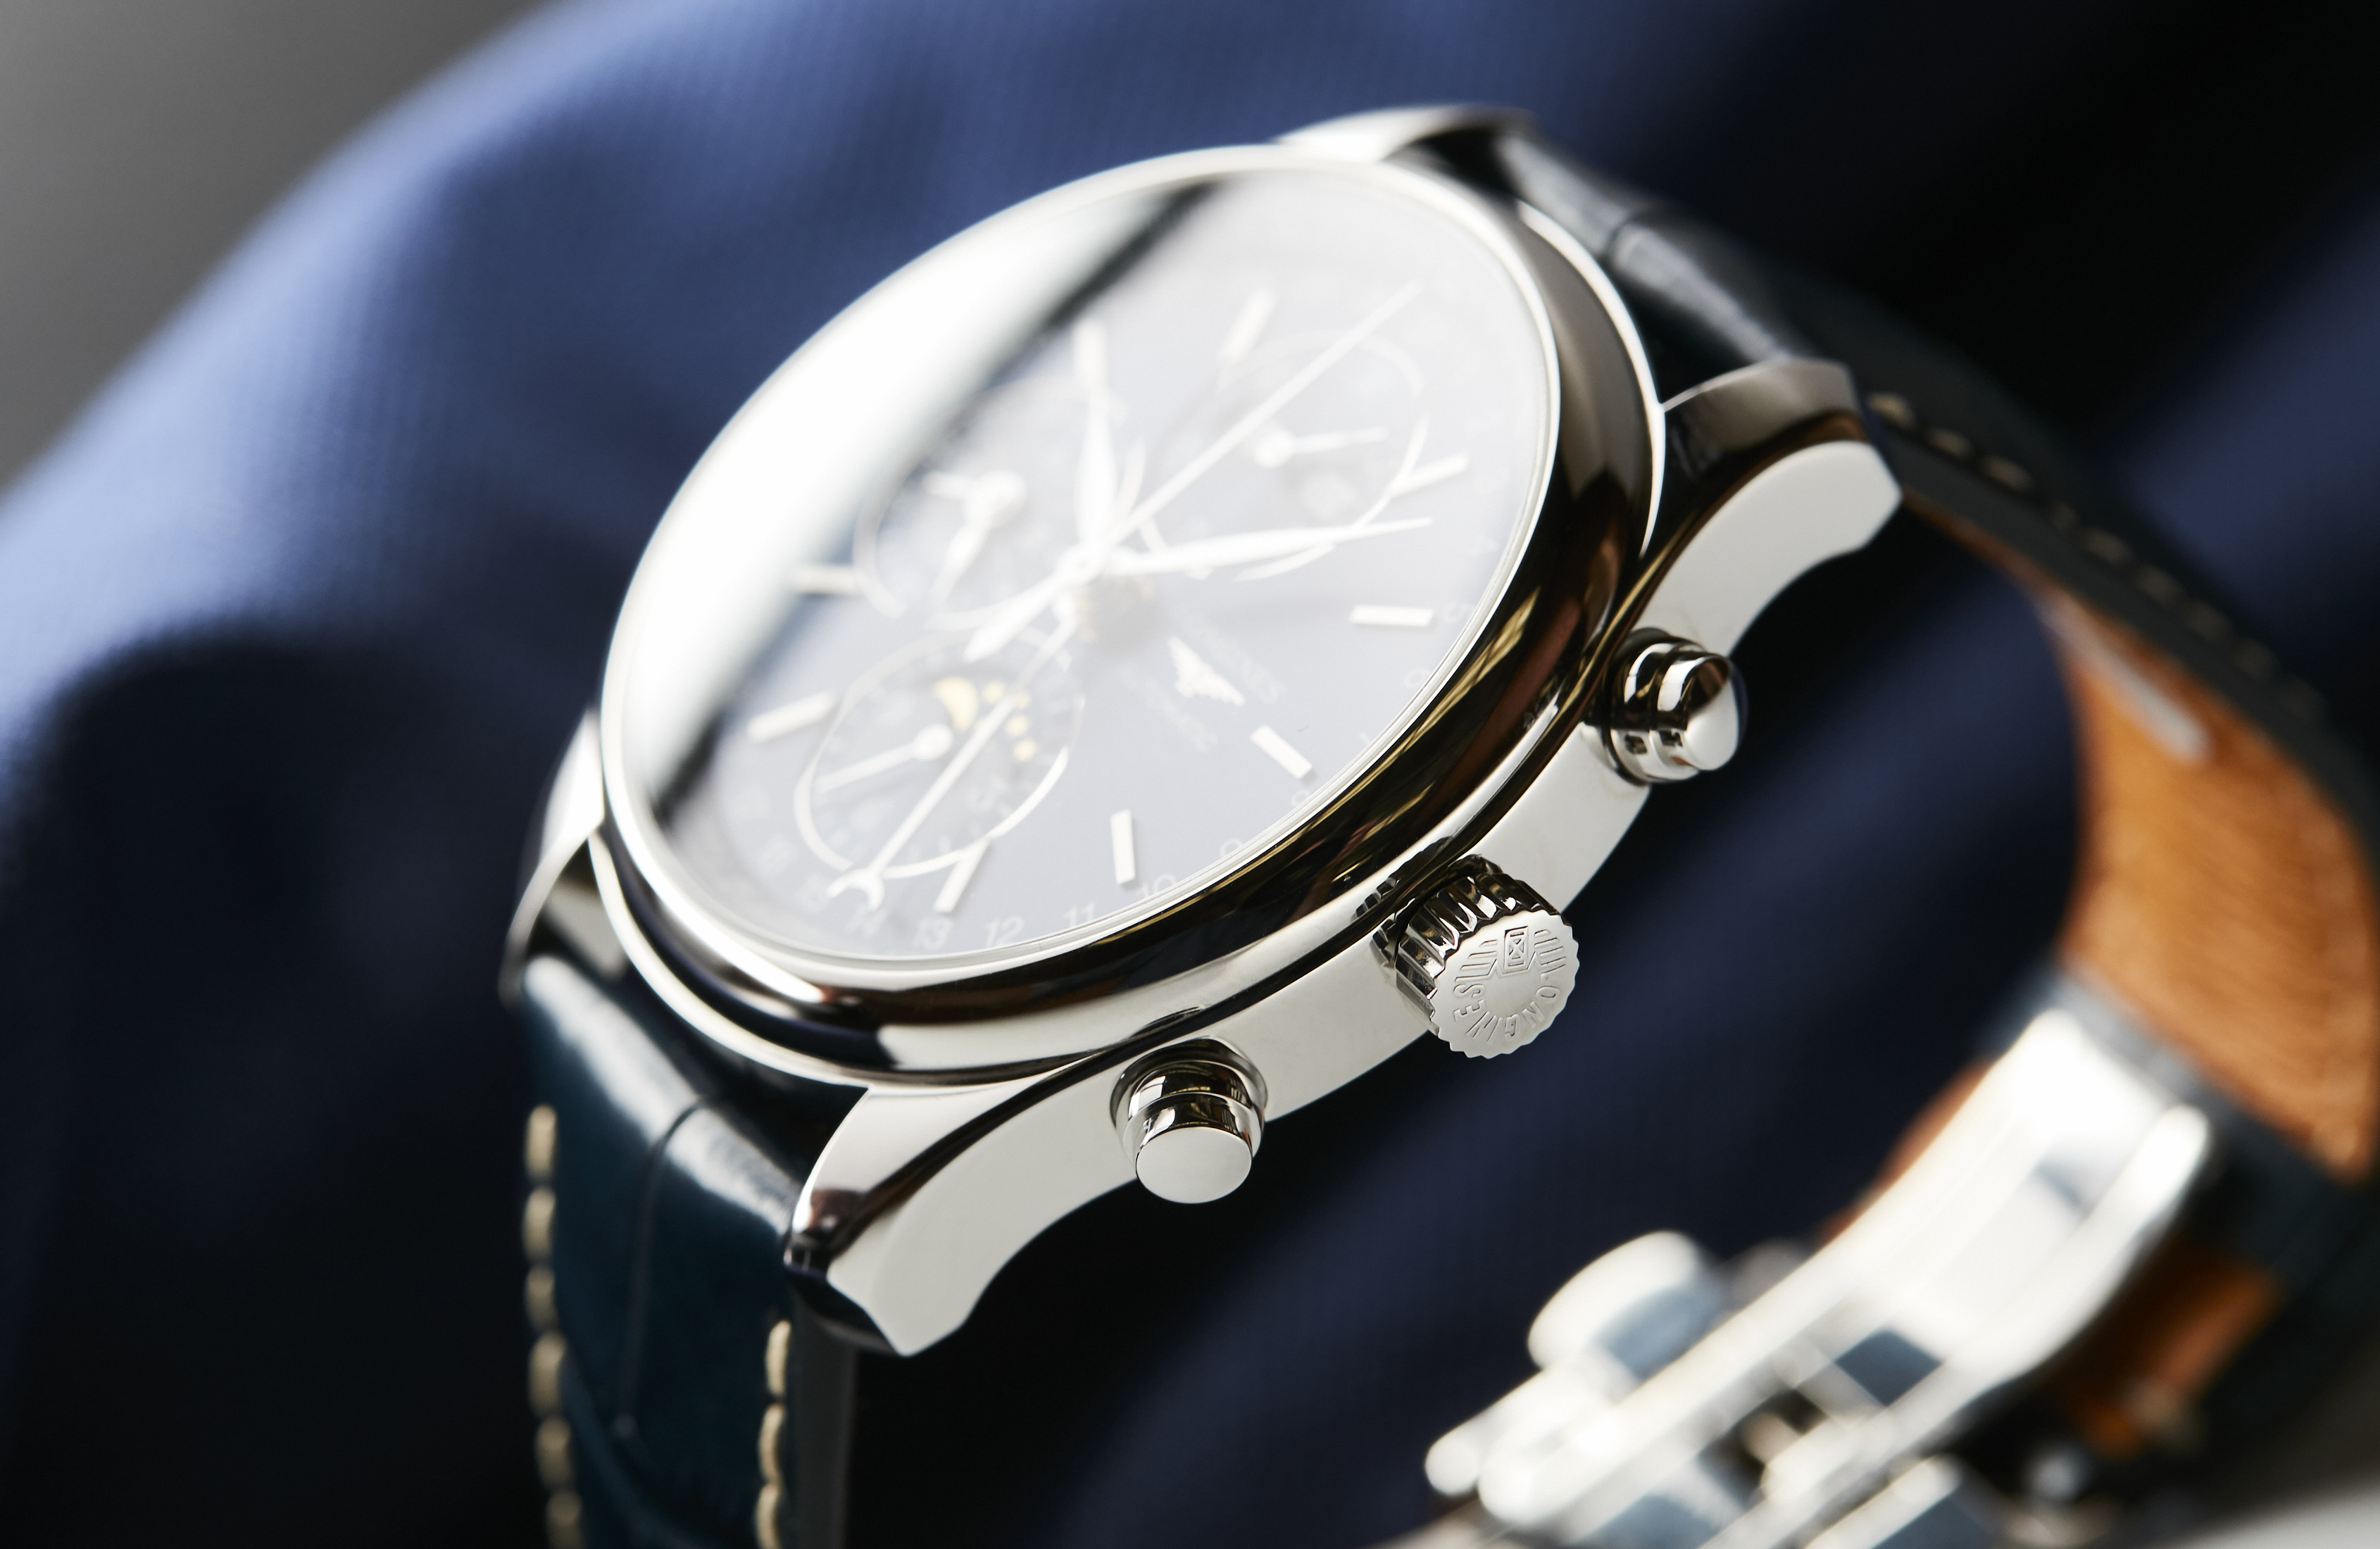 The Longines Master Collection Ref. L2.673.4.92.0